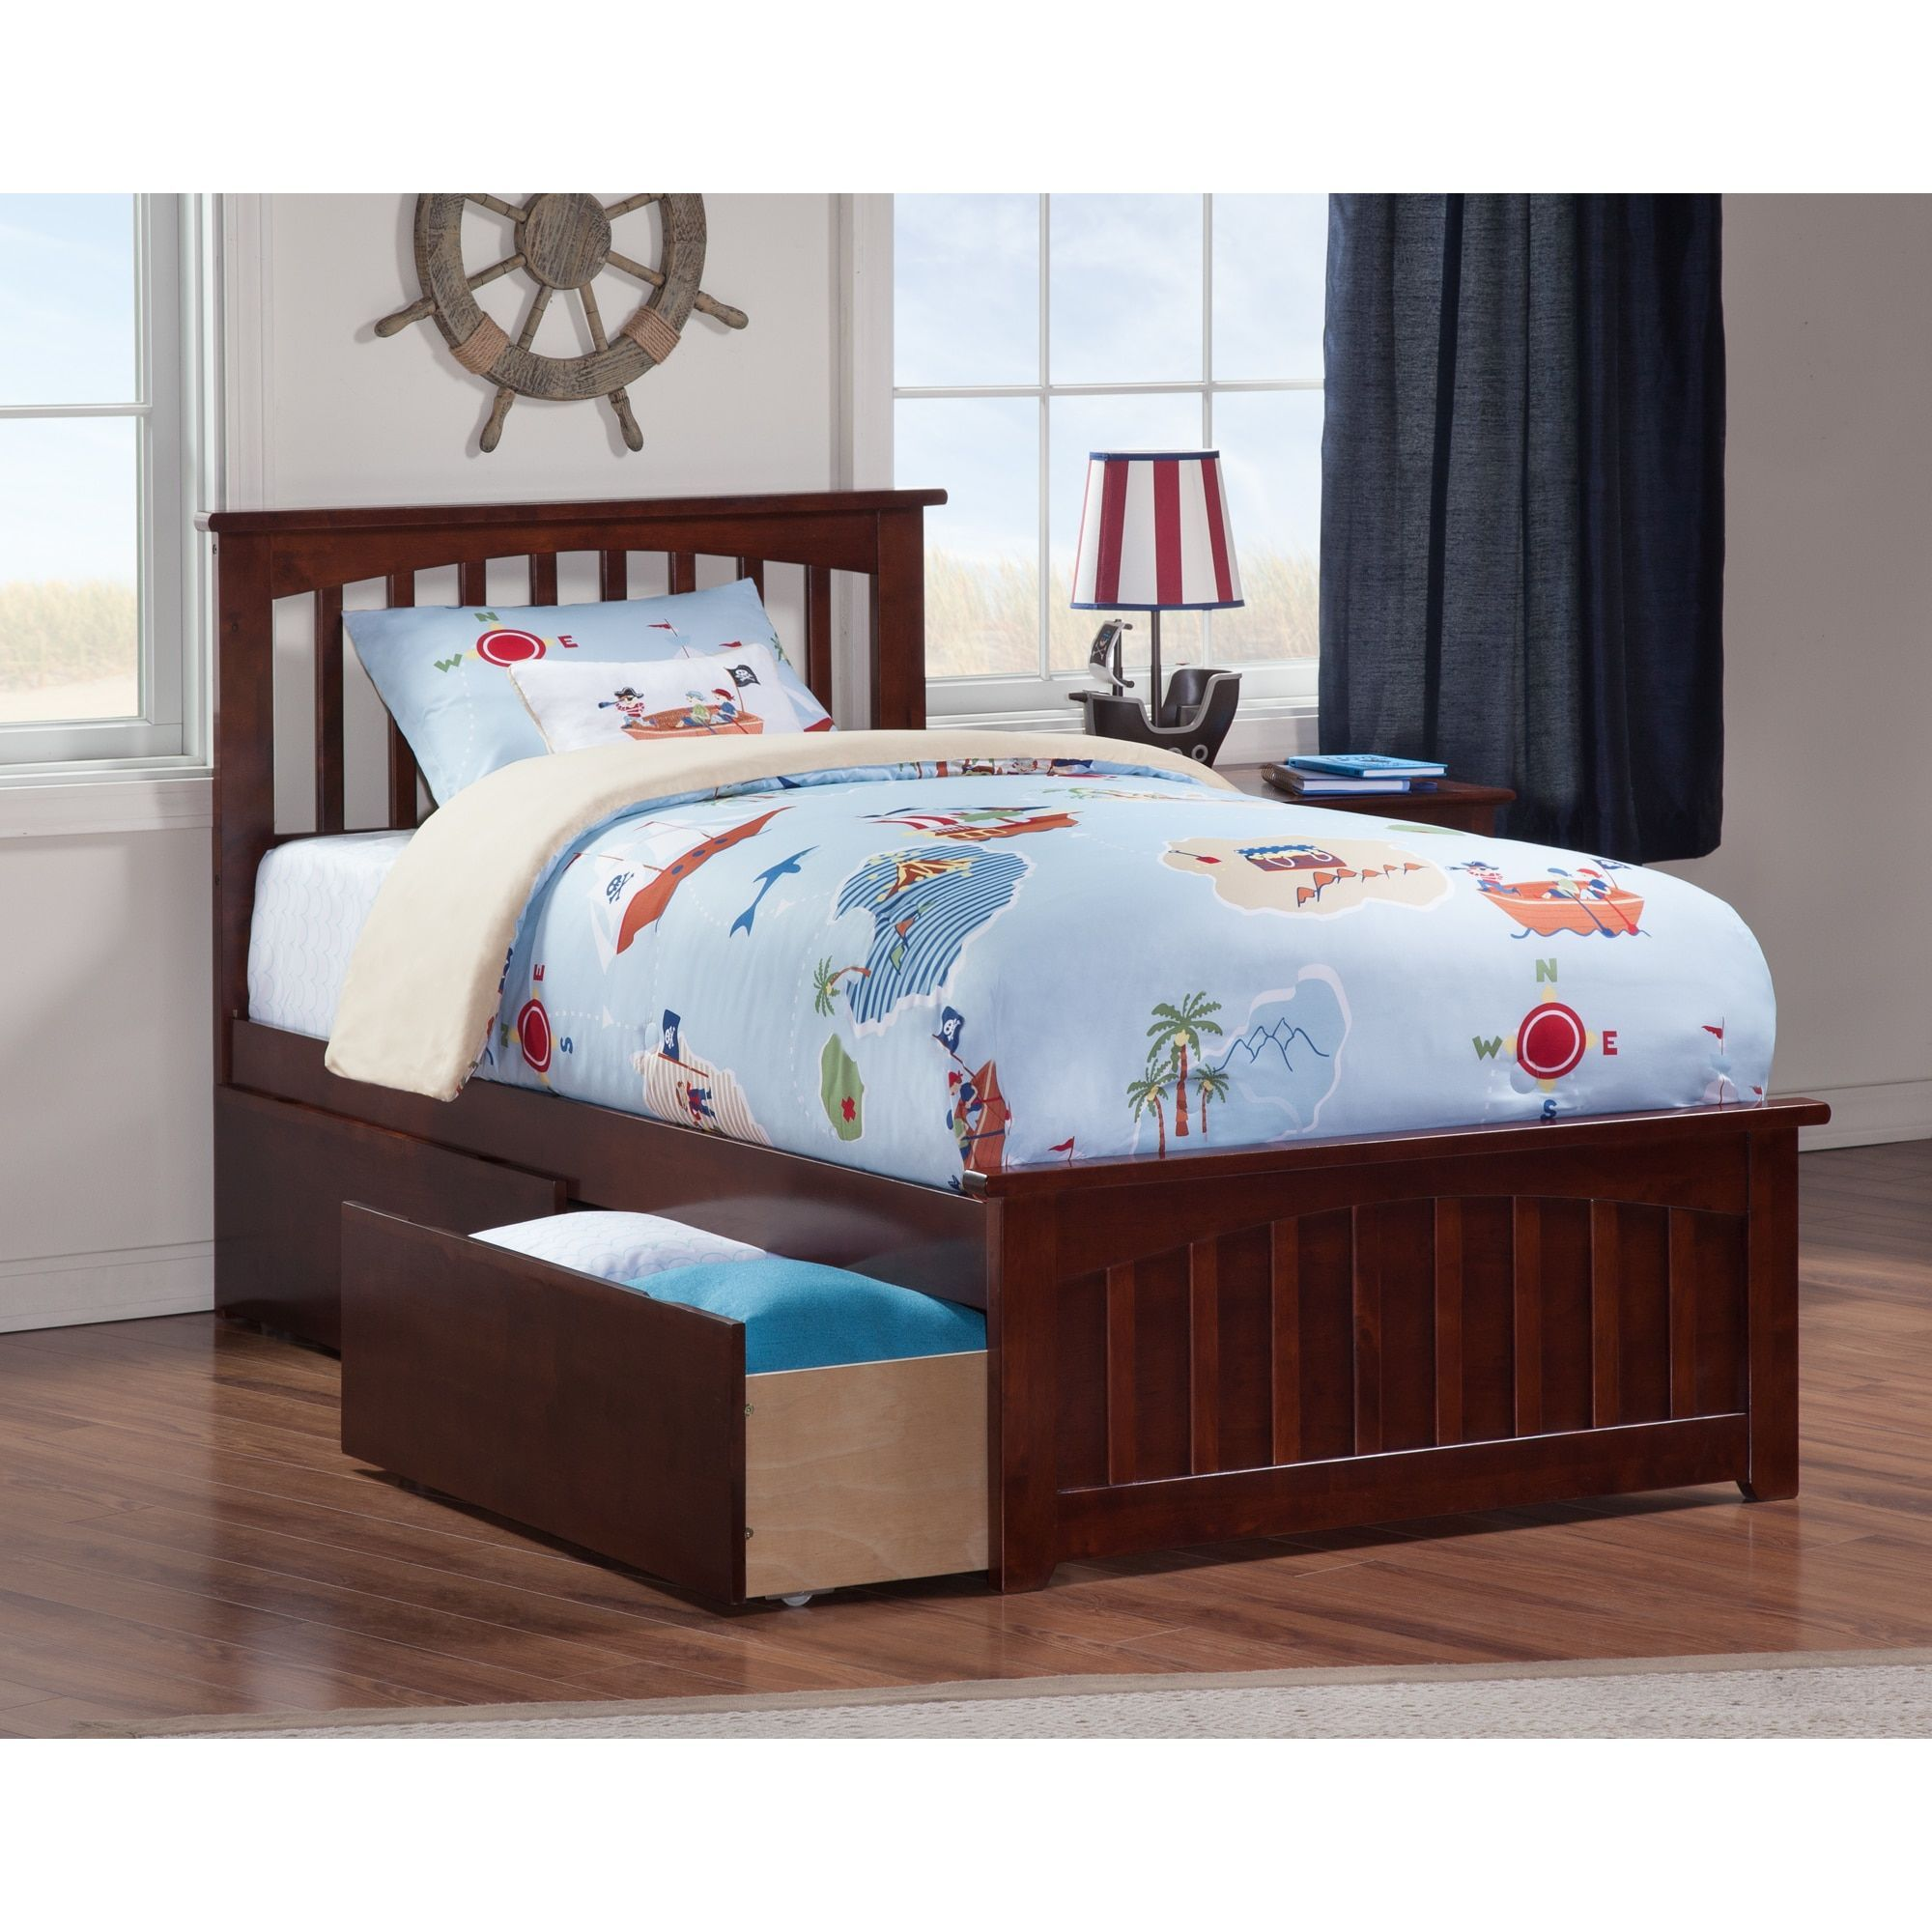 Atlantic Furniture Mission Twin Bed With Matching Foot Board 2 Urban Drawers In Walnut